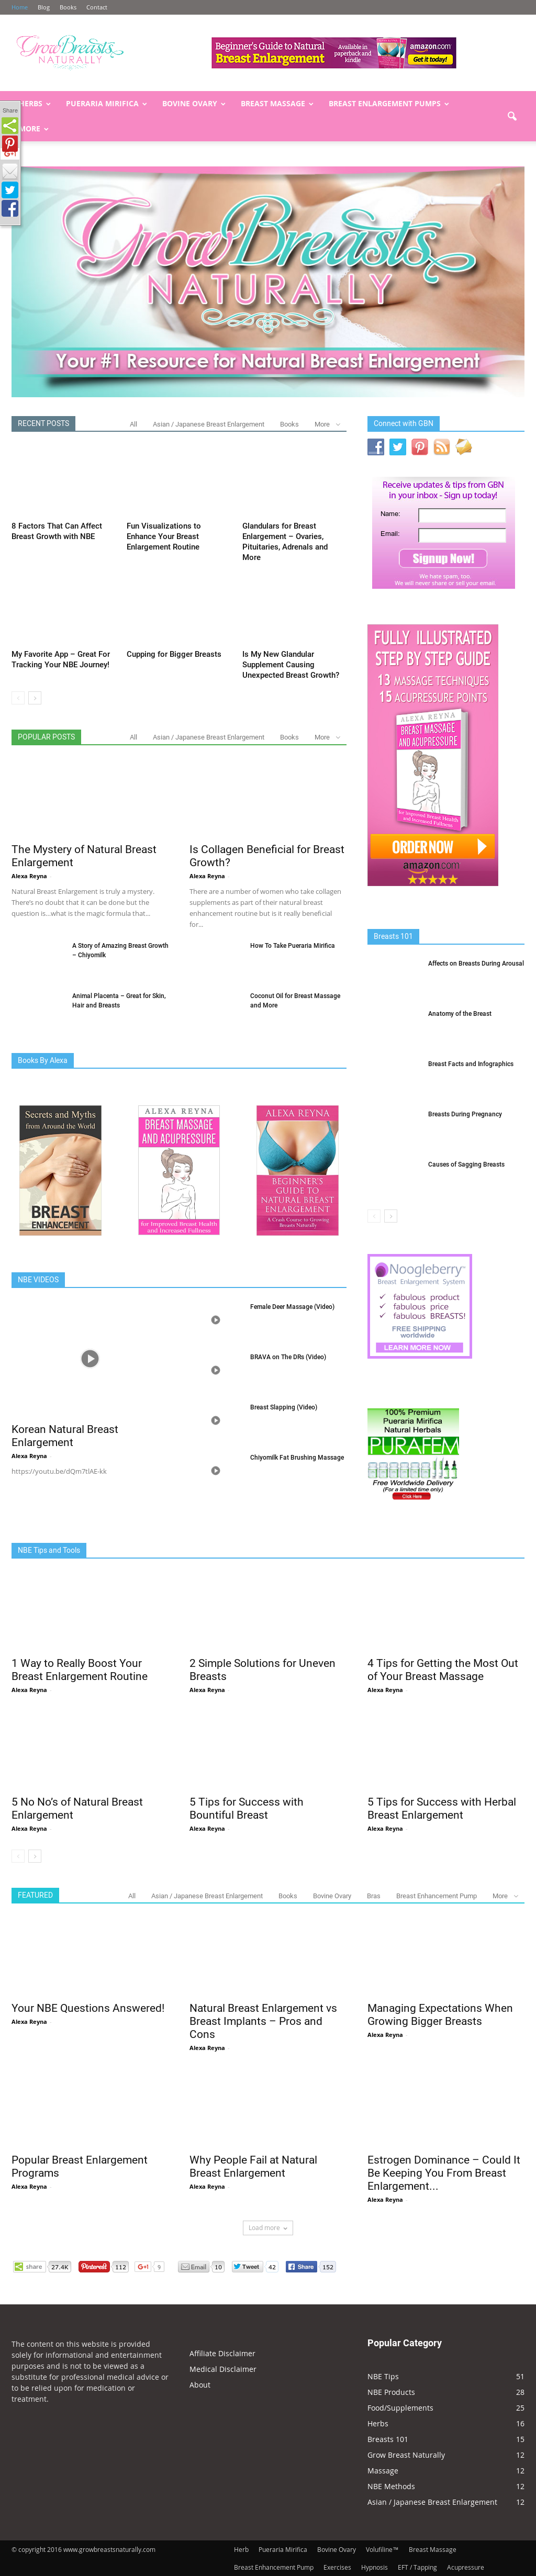 Aki Hoshino Massage owler reports - grow breasts naturally blog your nbe